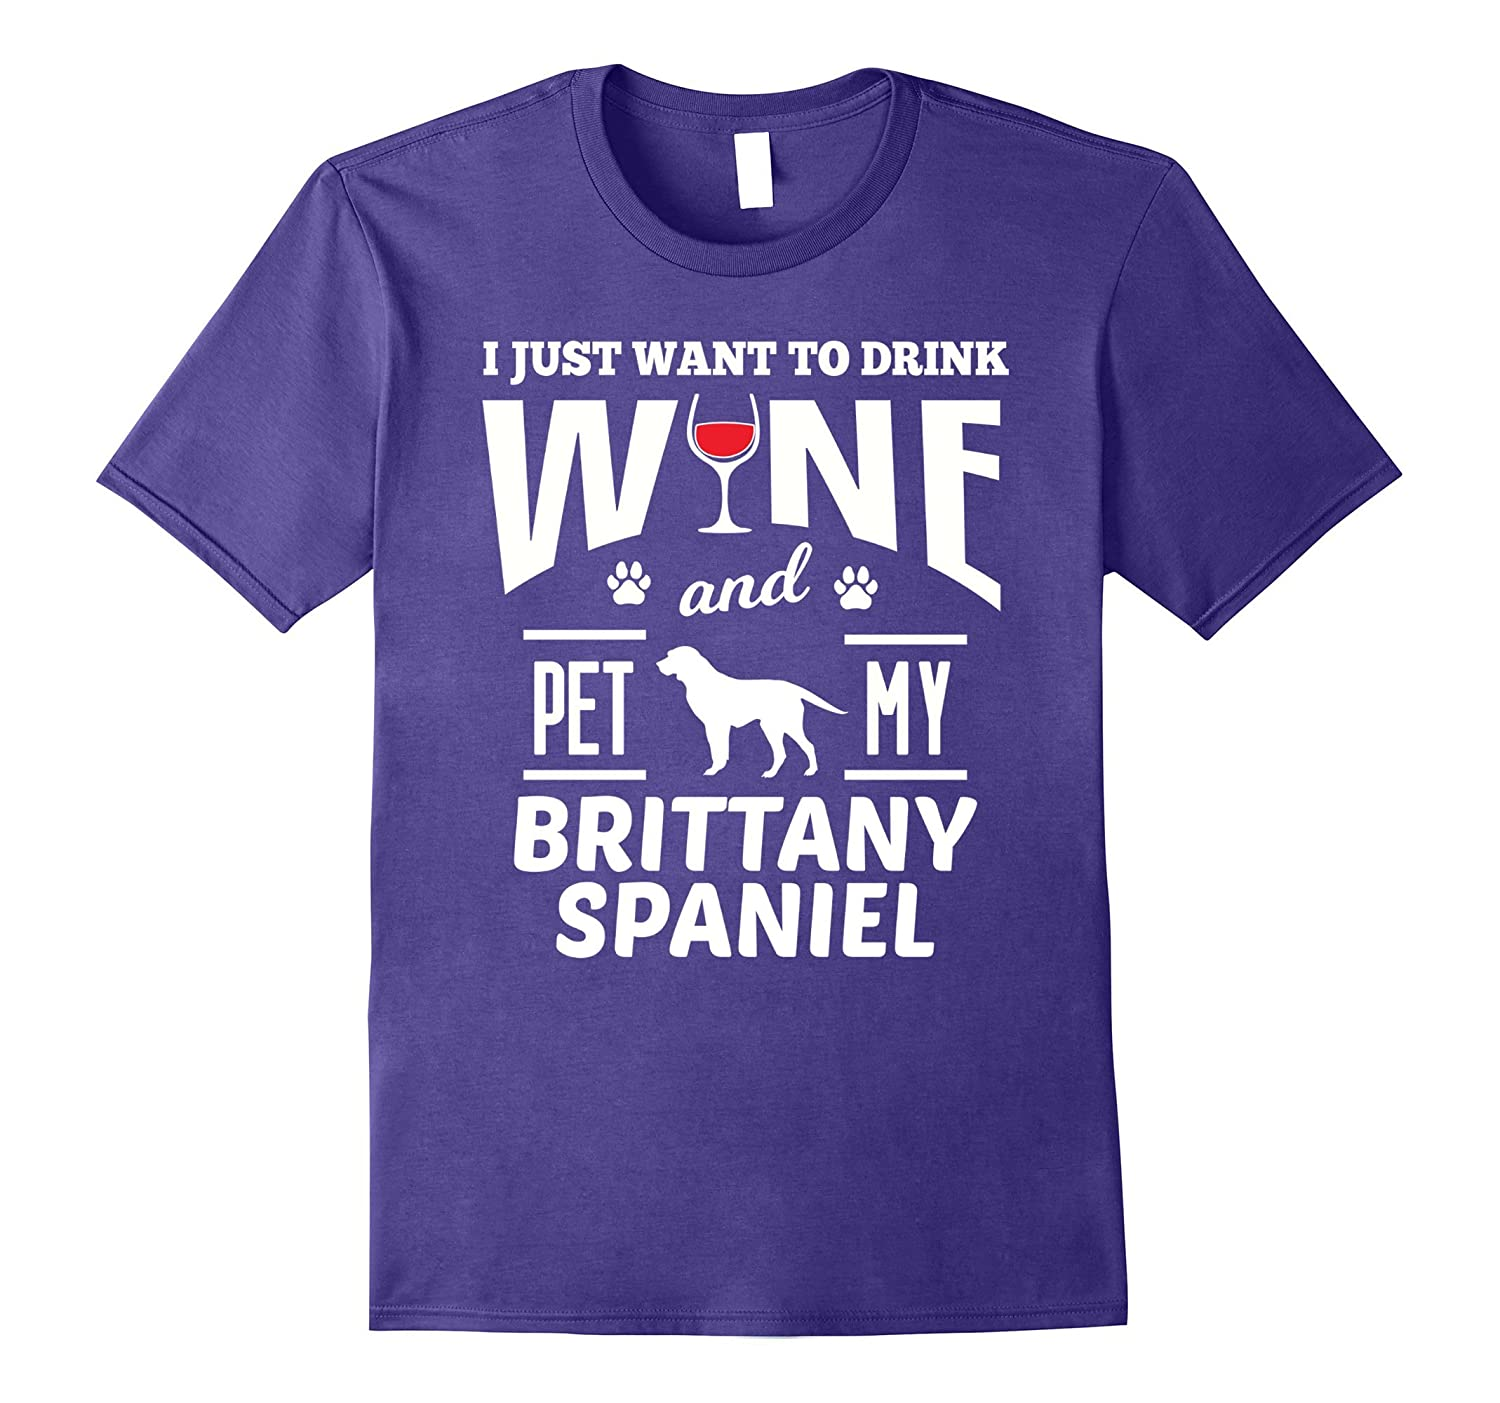 Brittany Spaniel Shirt I Just Want To Drink Wine Dog Lover-Vaci